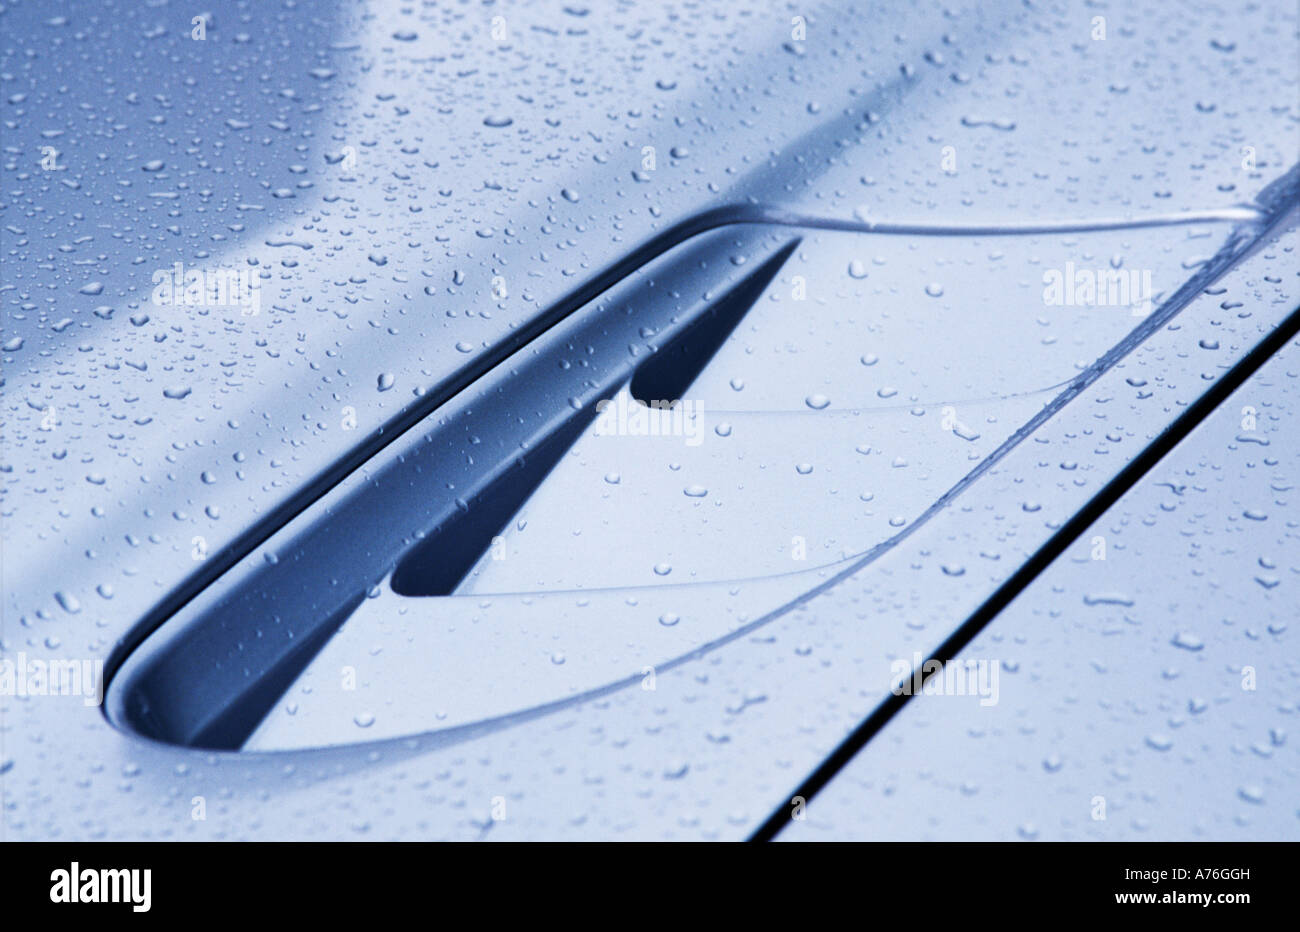 Close up of Maserati 3200 GT of bonnet grill covered in rain - Stock Image